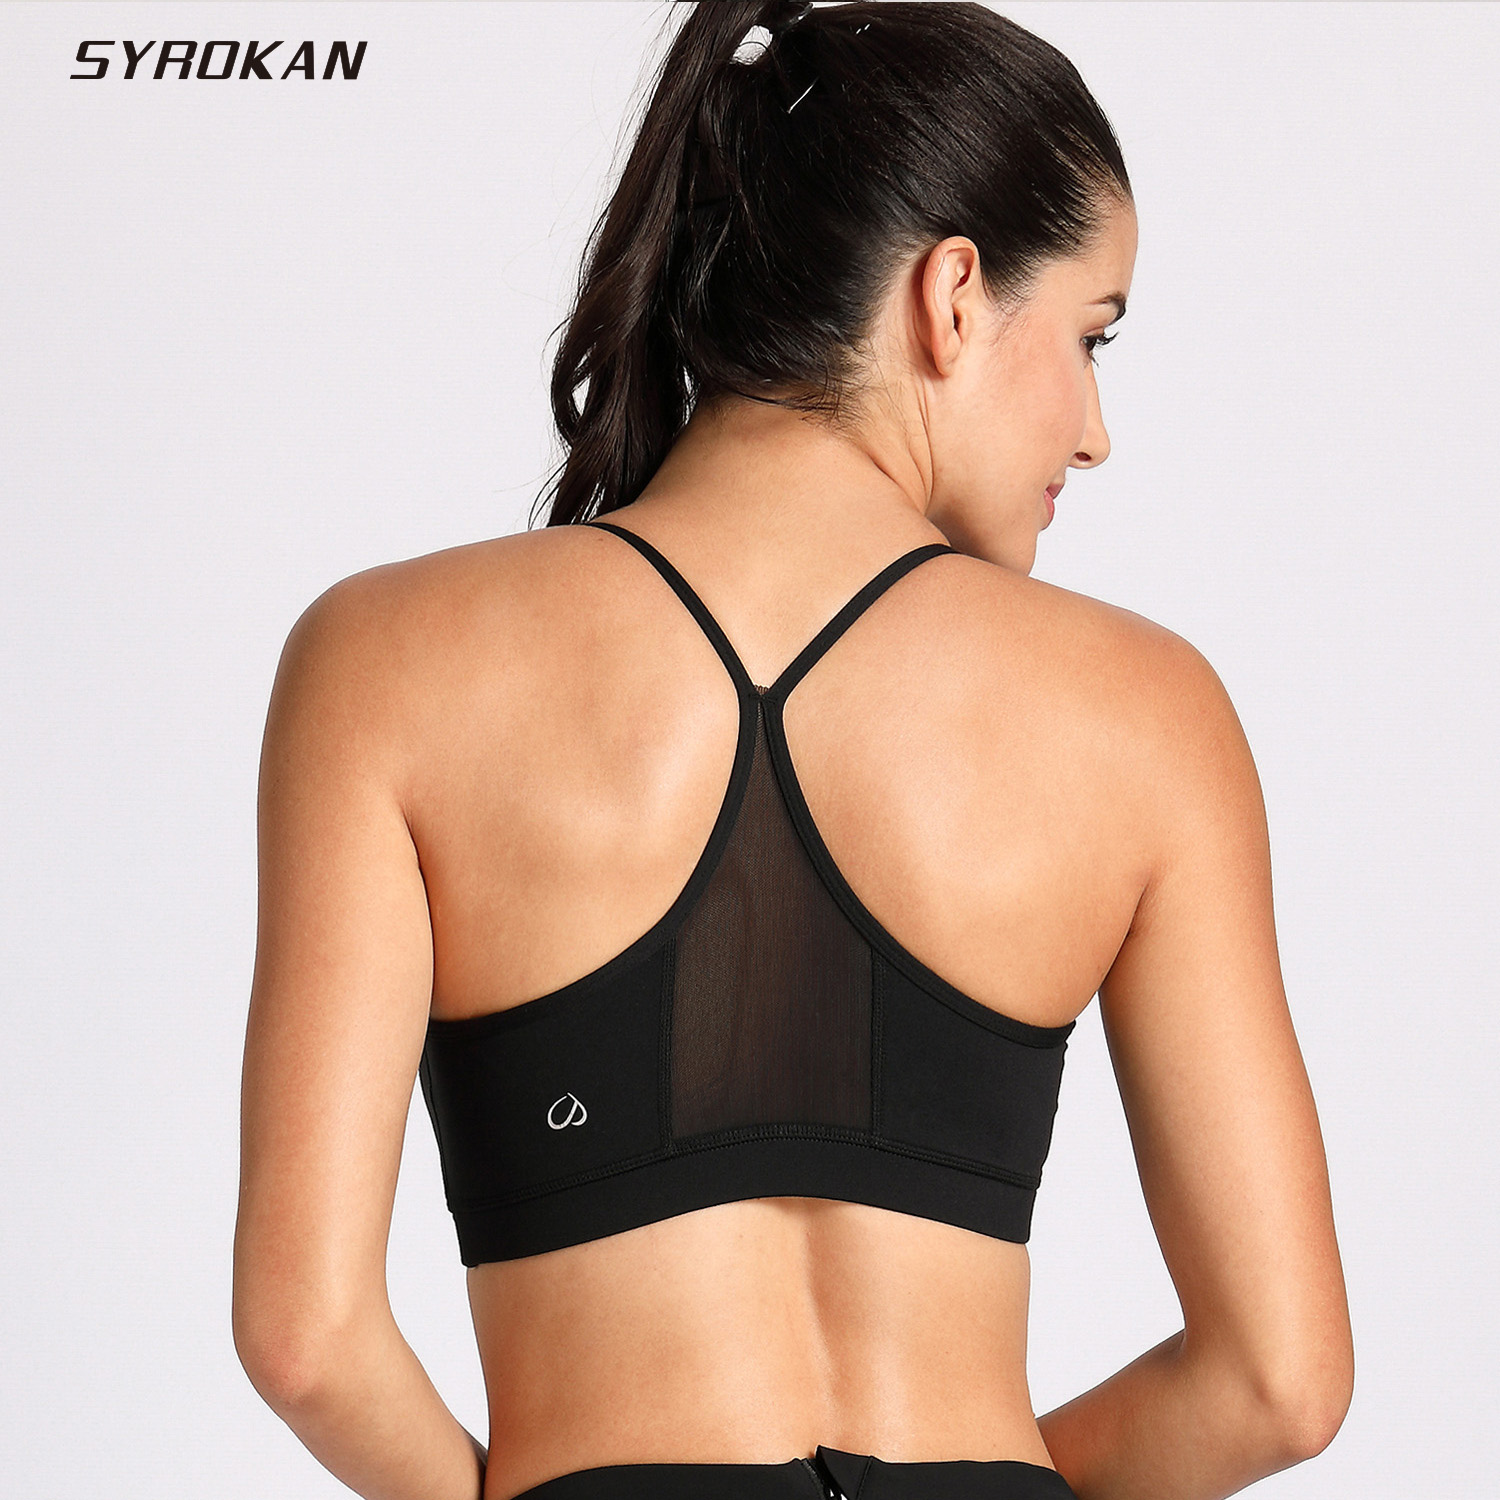 72c69063489a8 SYROKAN Women s Light Support Mesh Sports Bras with Removable Cups Yoga Bra-in  Sports Bras from Sports   Entertainment on Aliexpress.com